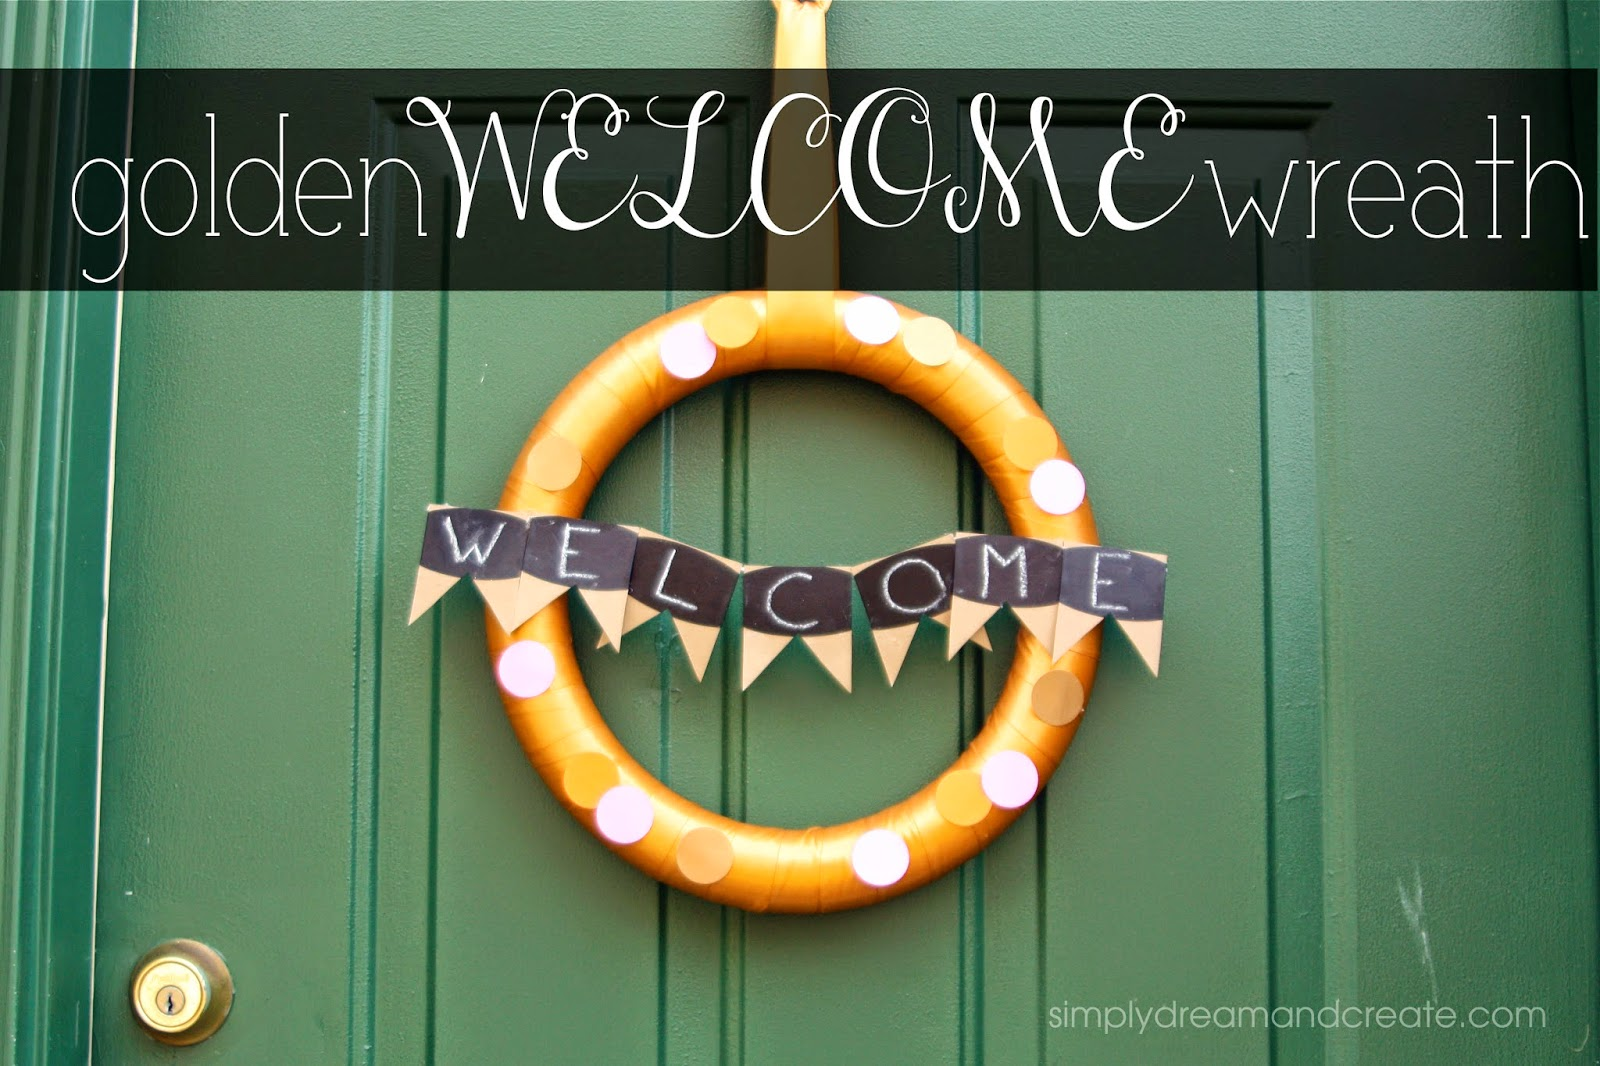 Golden Welcome Wreath Tutorial by Simply Dream and Create